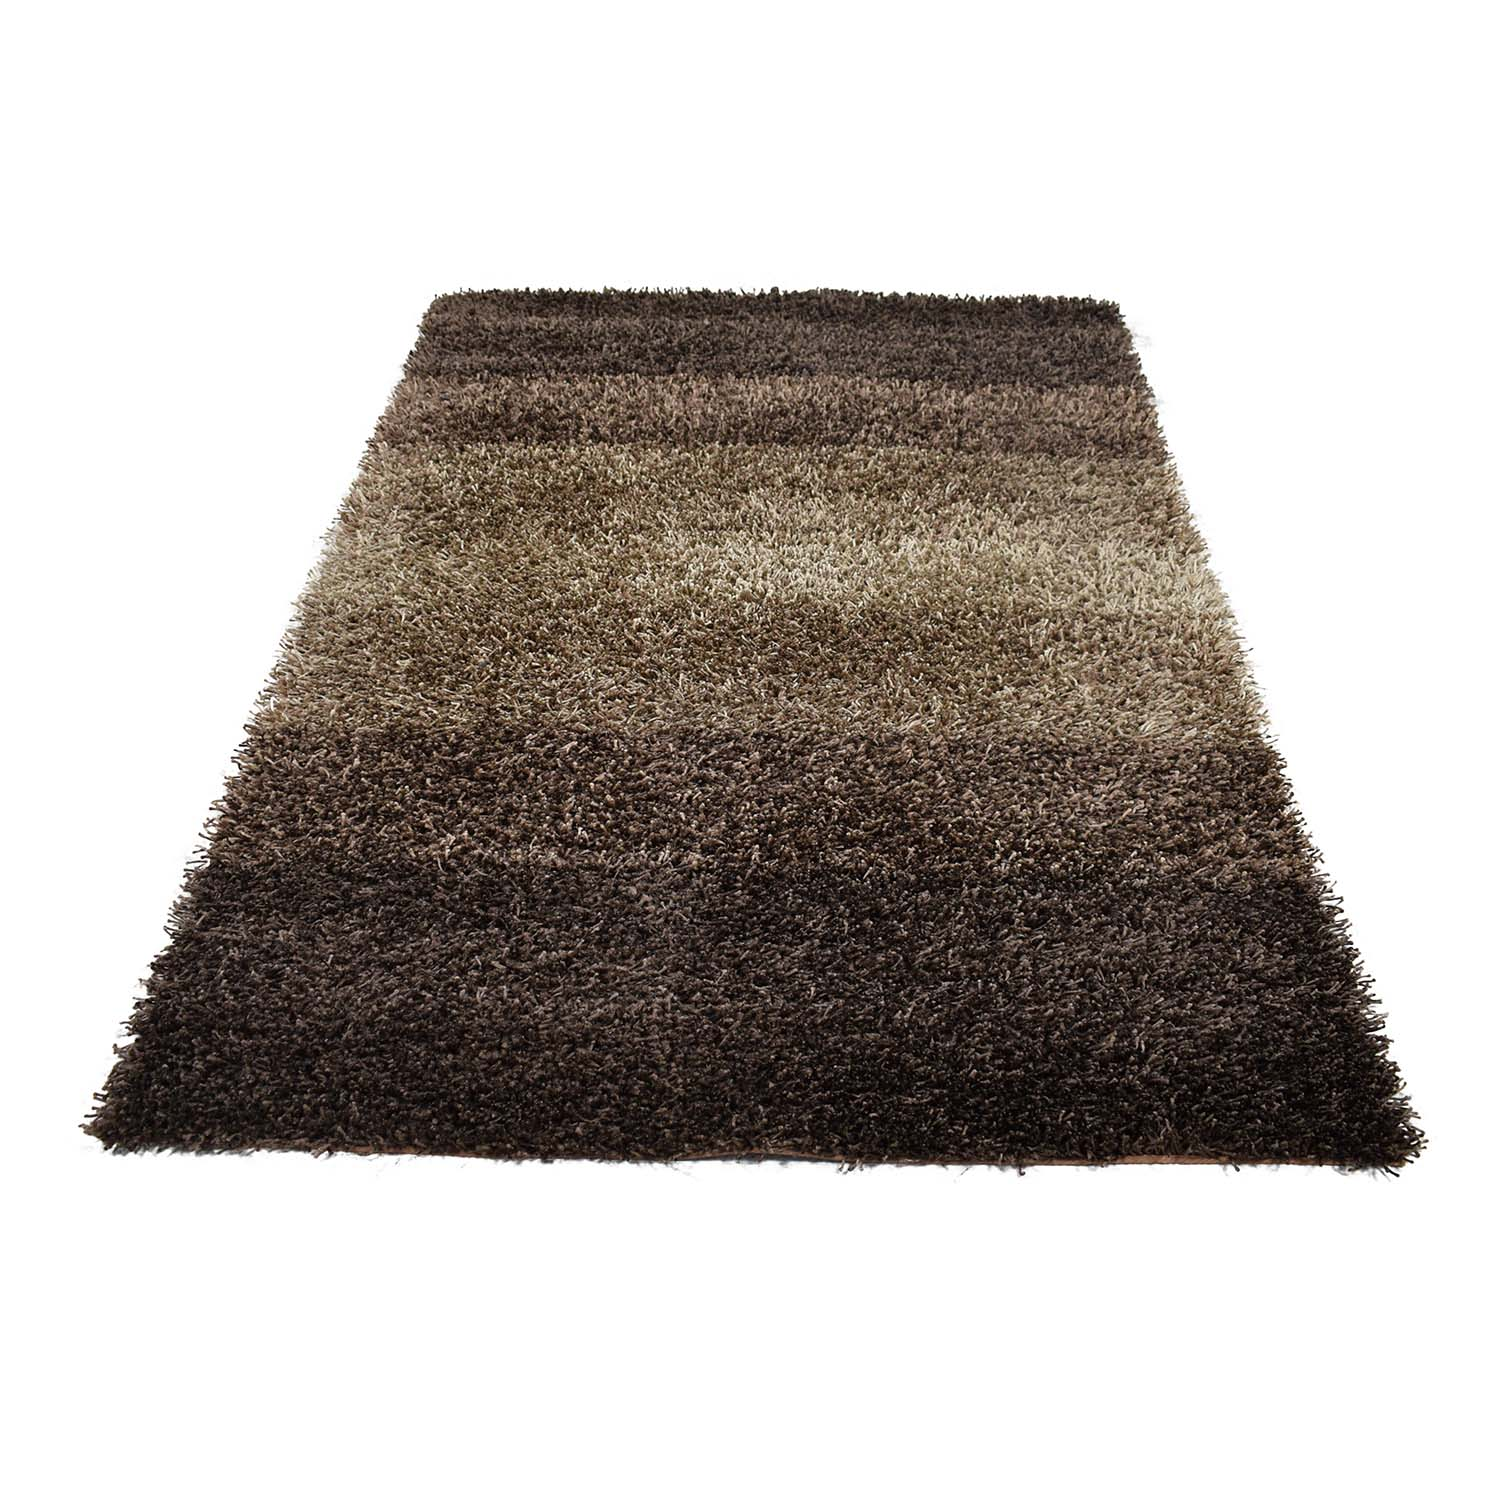 Spectrum Spectrum Brown Shag Rug price